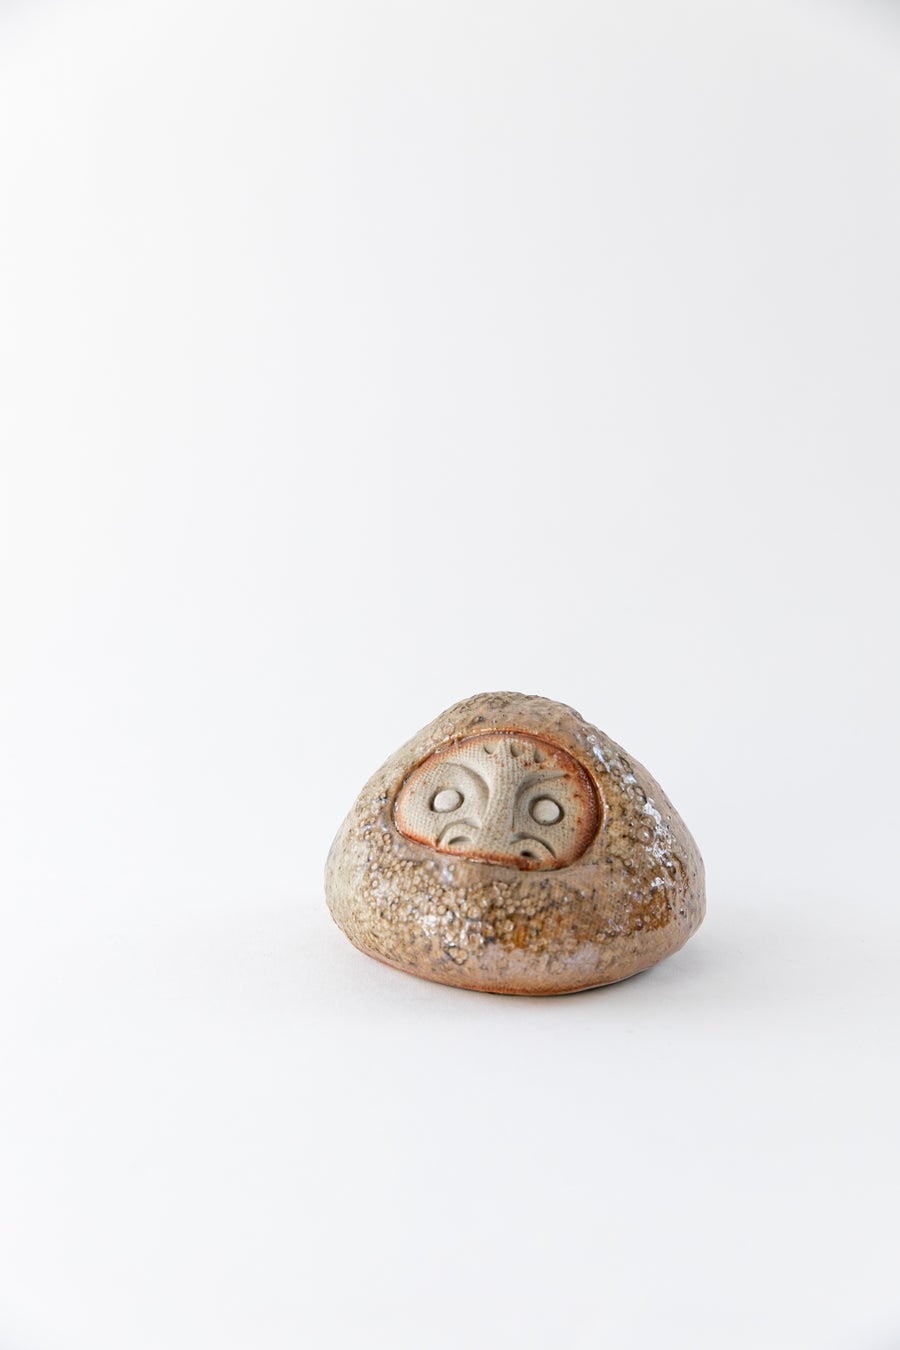 Image of Daruma Wishing Doll - Large Crater Shino